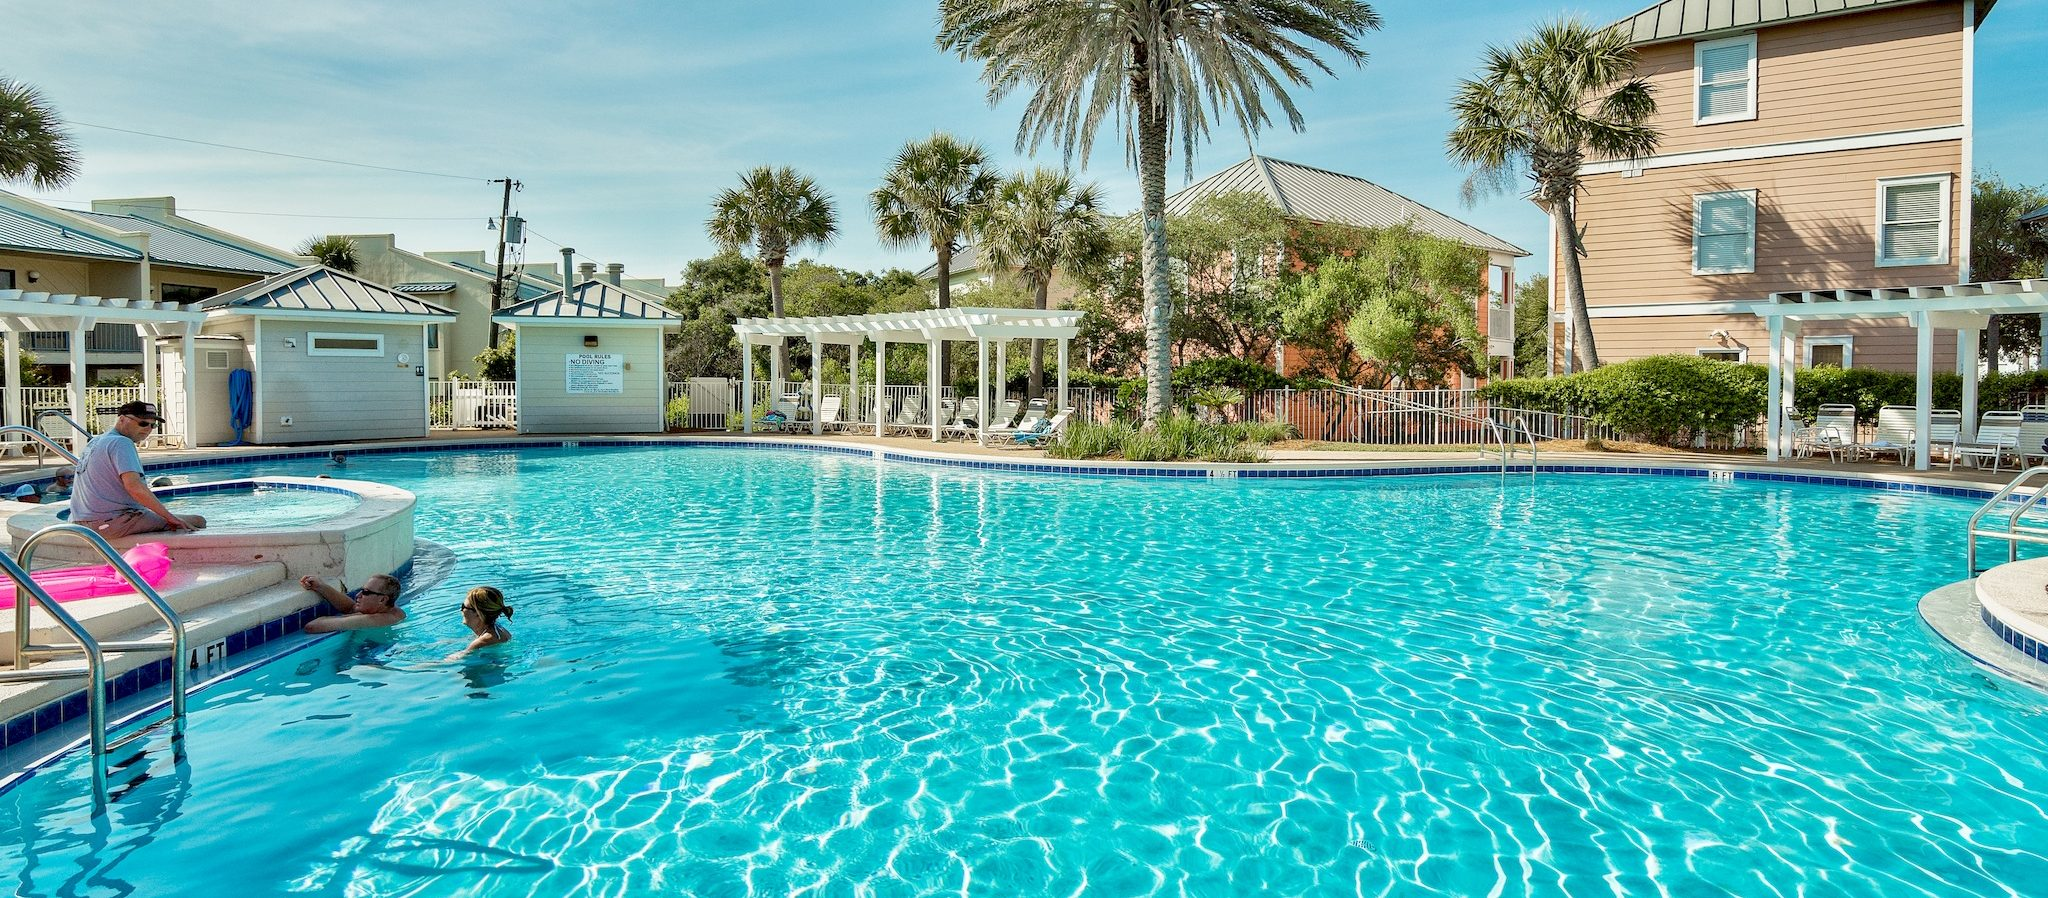 Search Destin vacation condos with lagoon style pool.